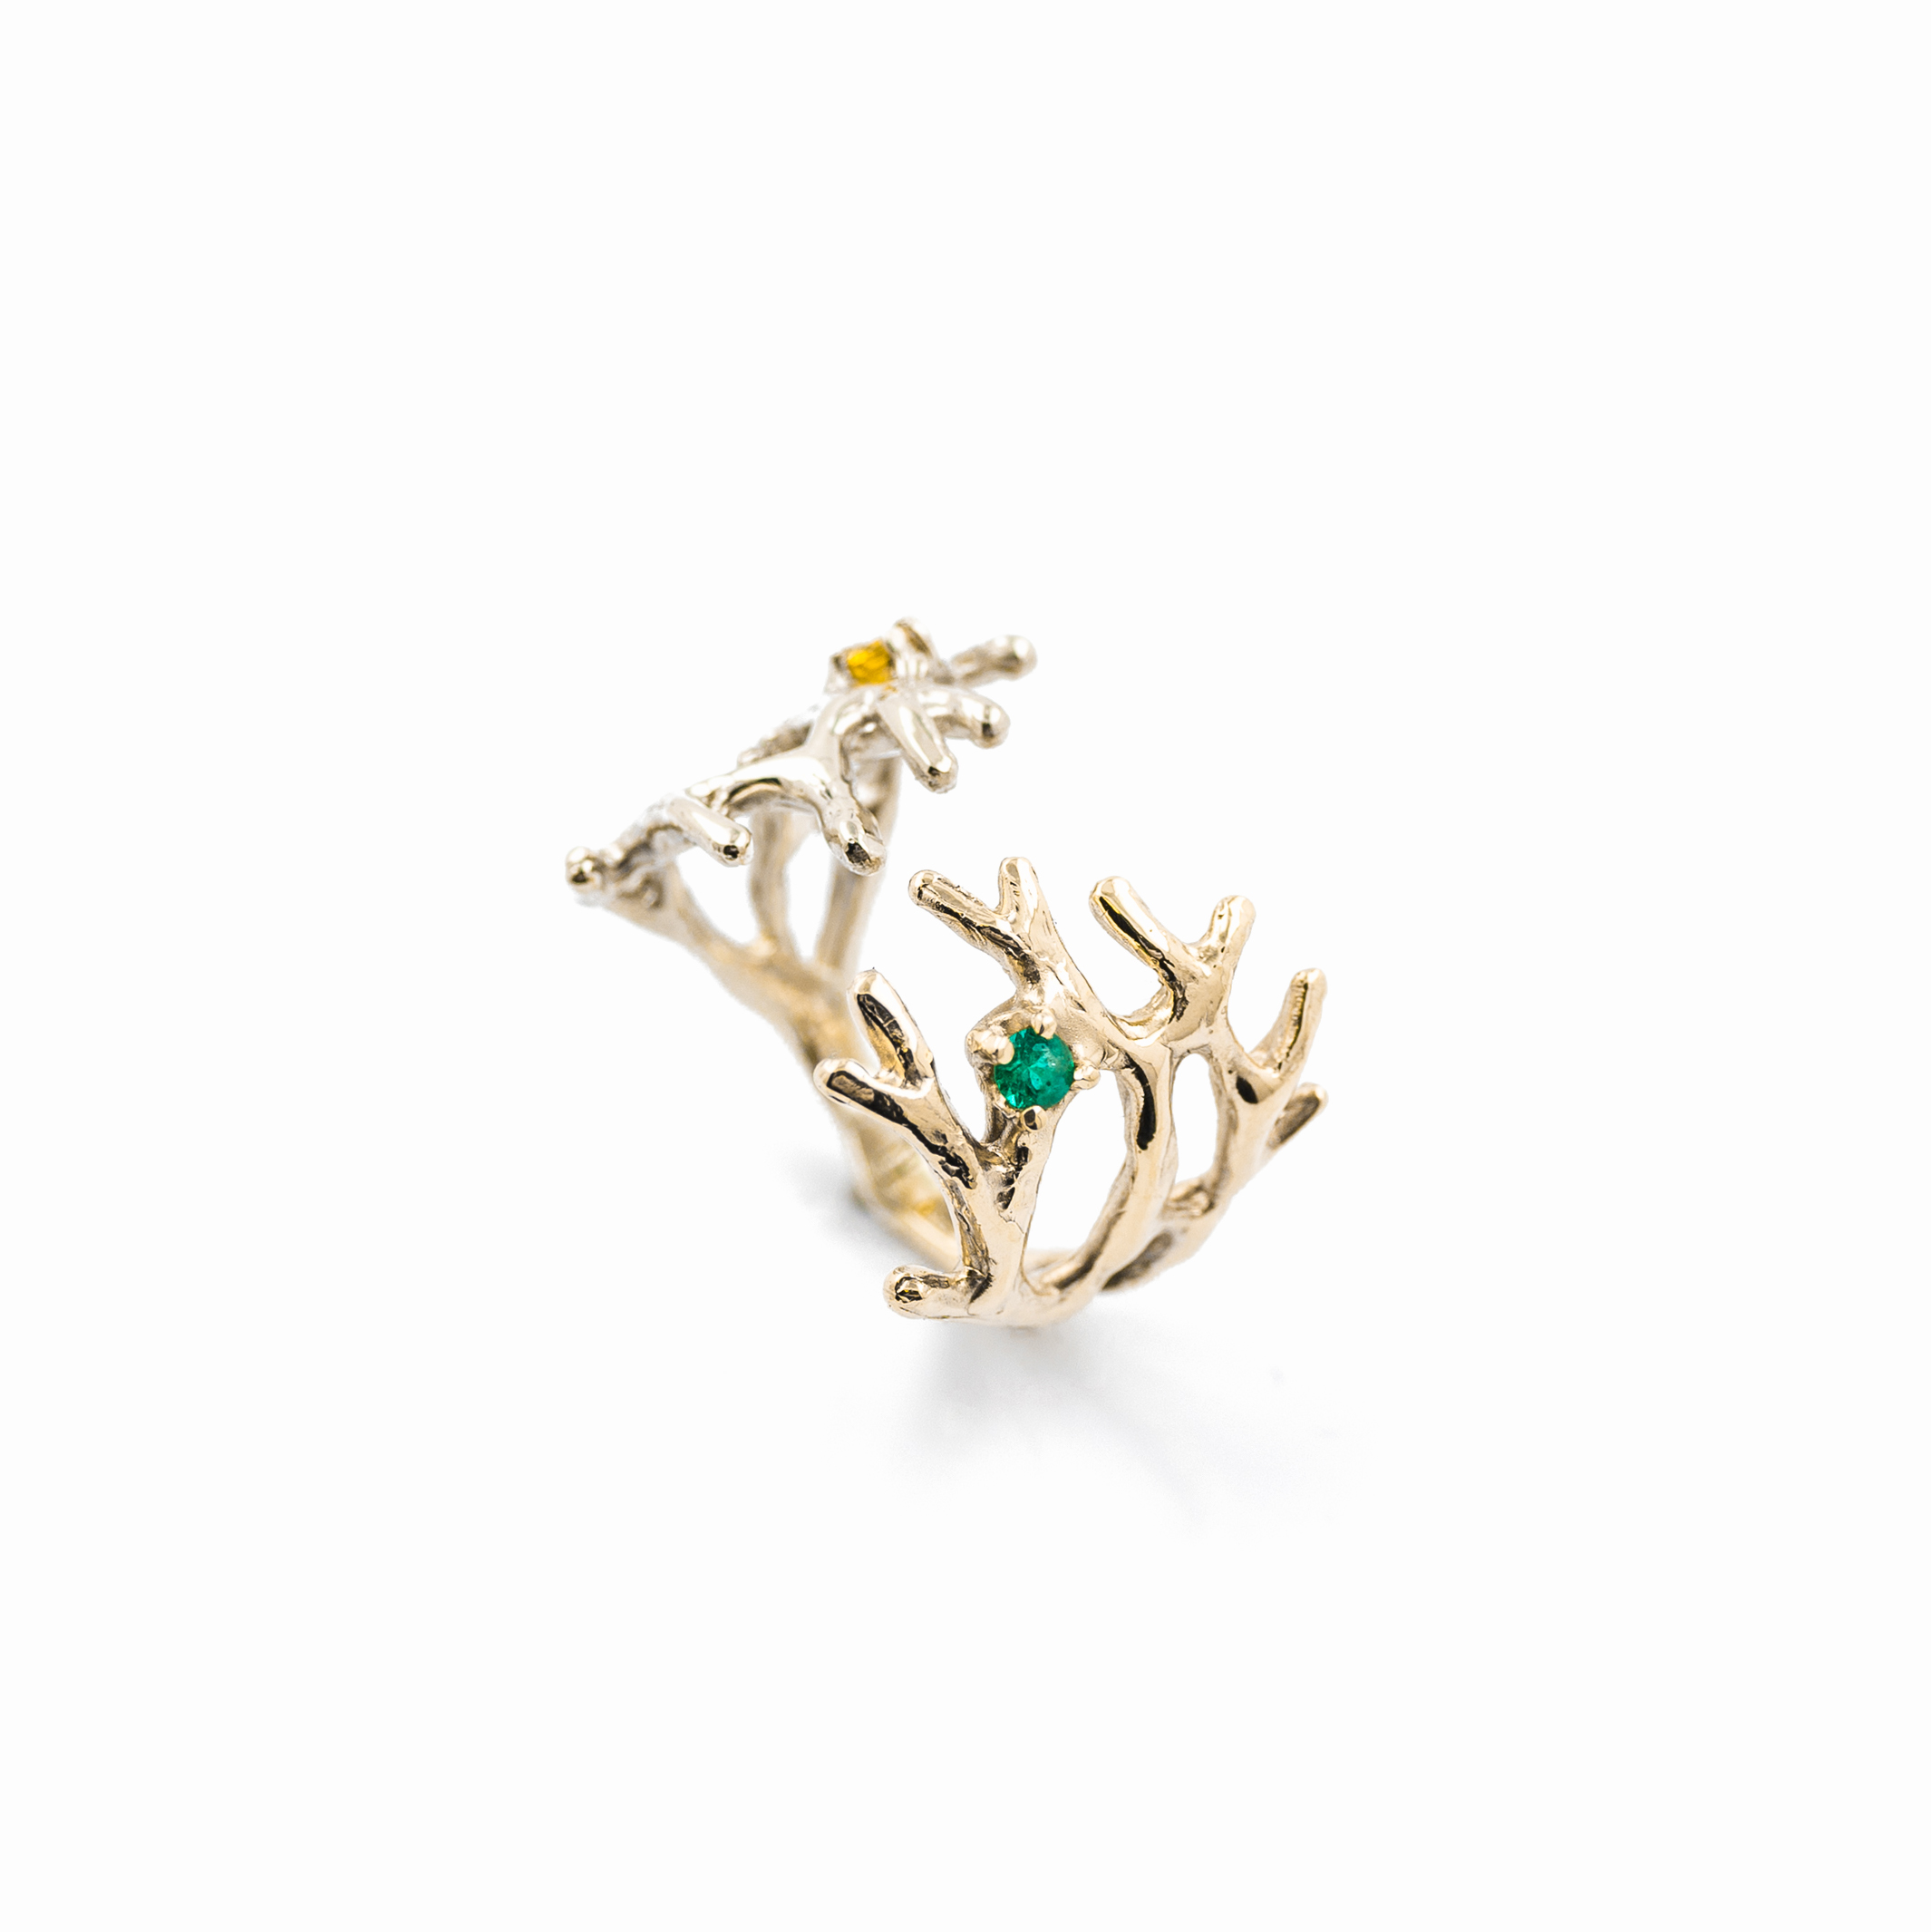 9ct white gold and yellow gold blend together to hold a yellow sapphire and bright green emerald.